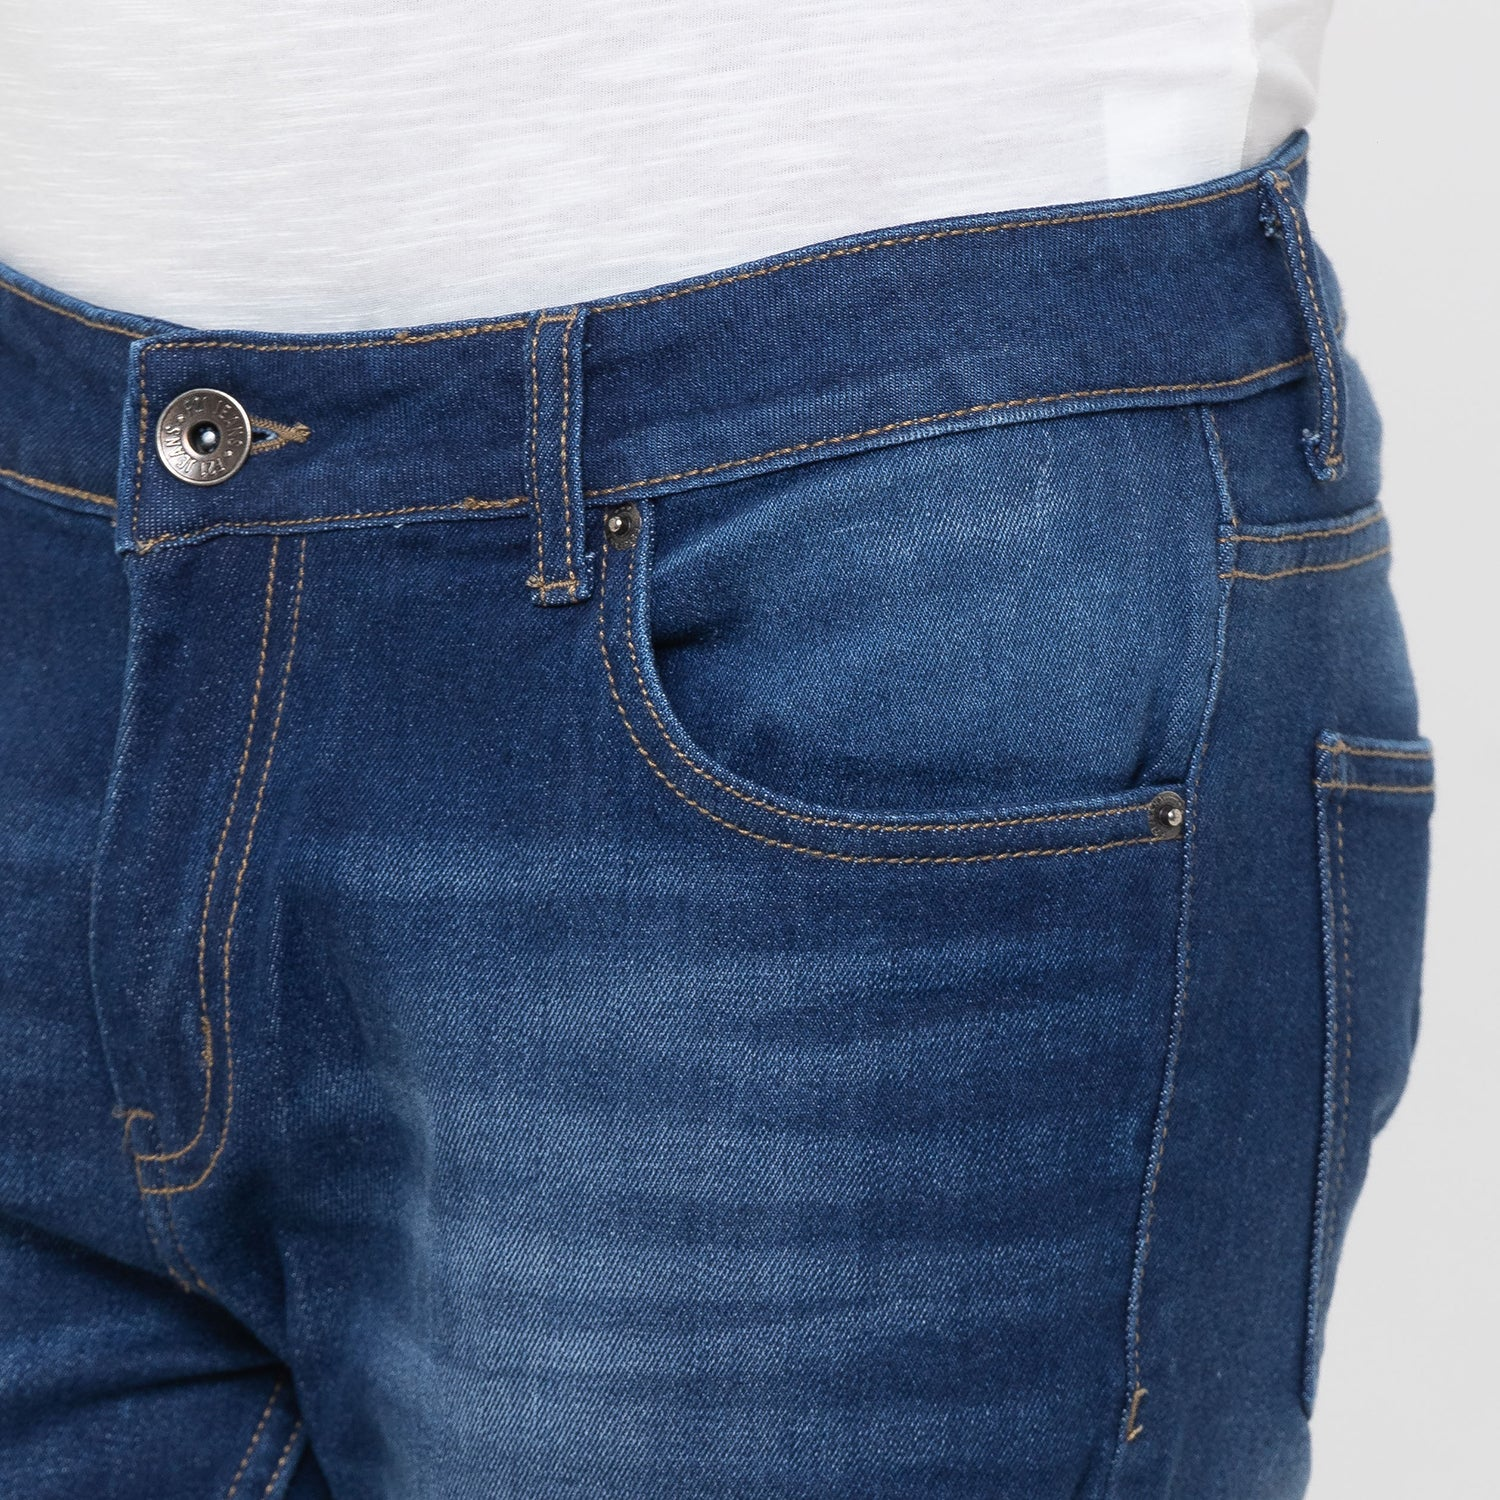 Globus Blue Washed Clean Look Jeans-5